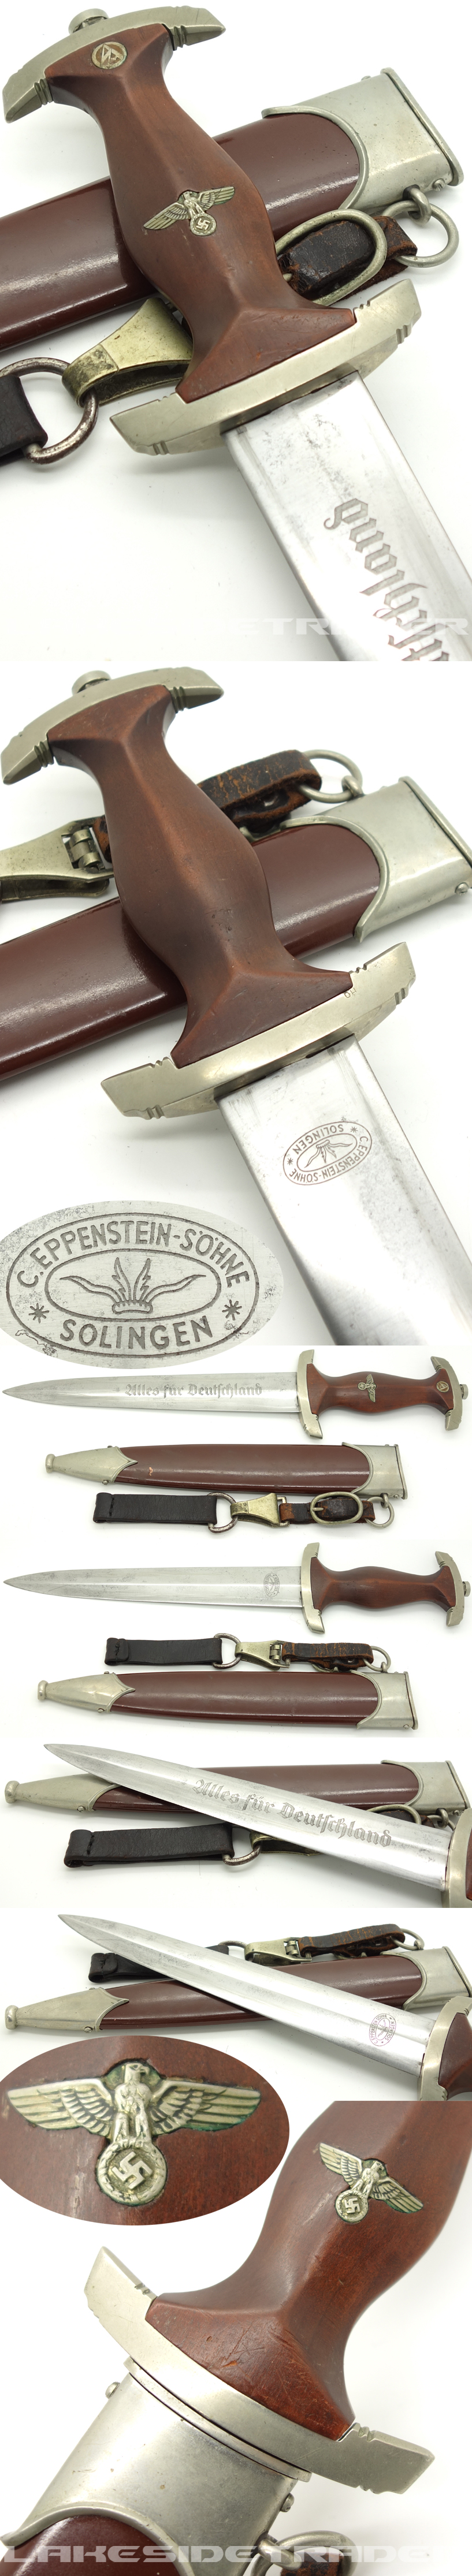 Early SA Dagger by C. Eppenstein